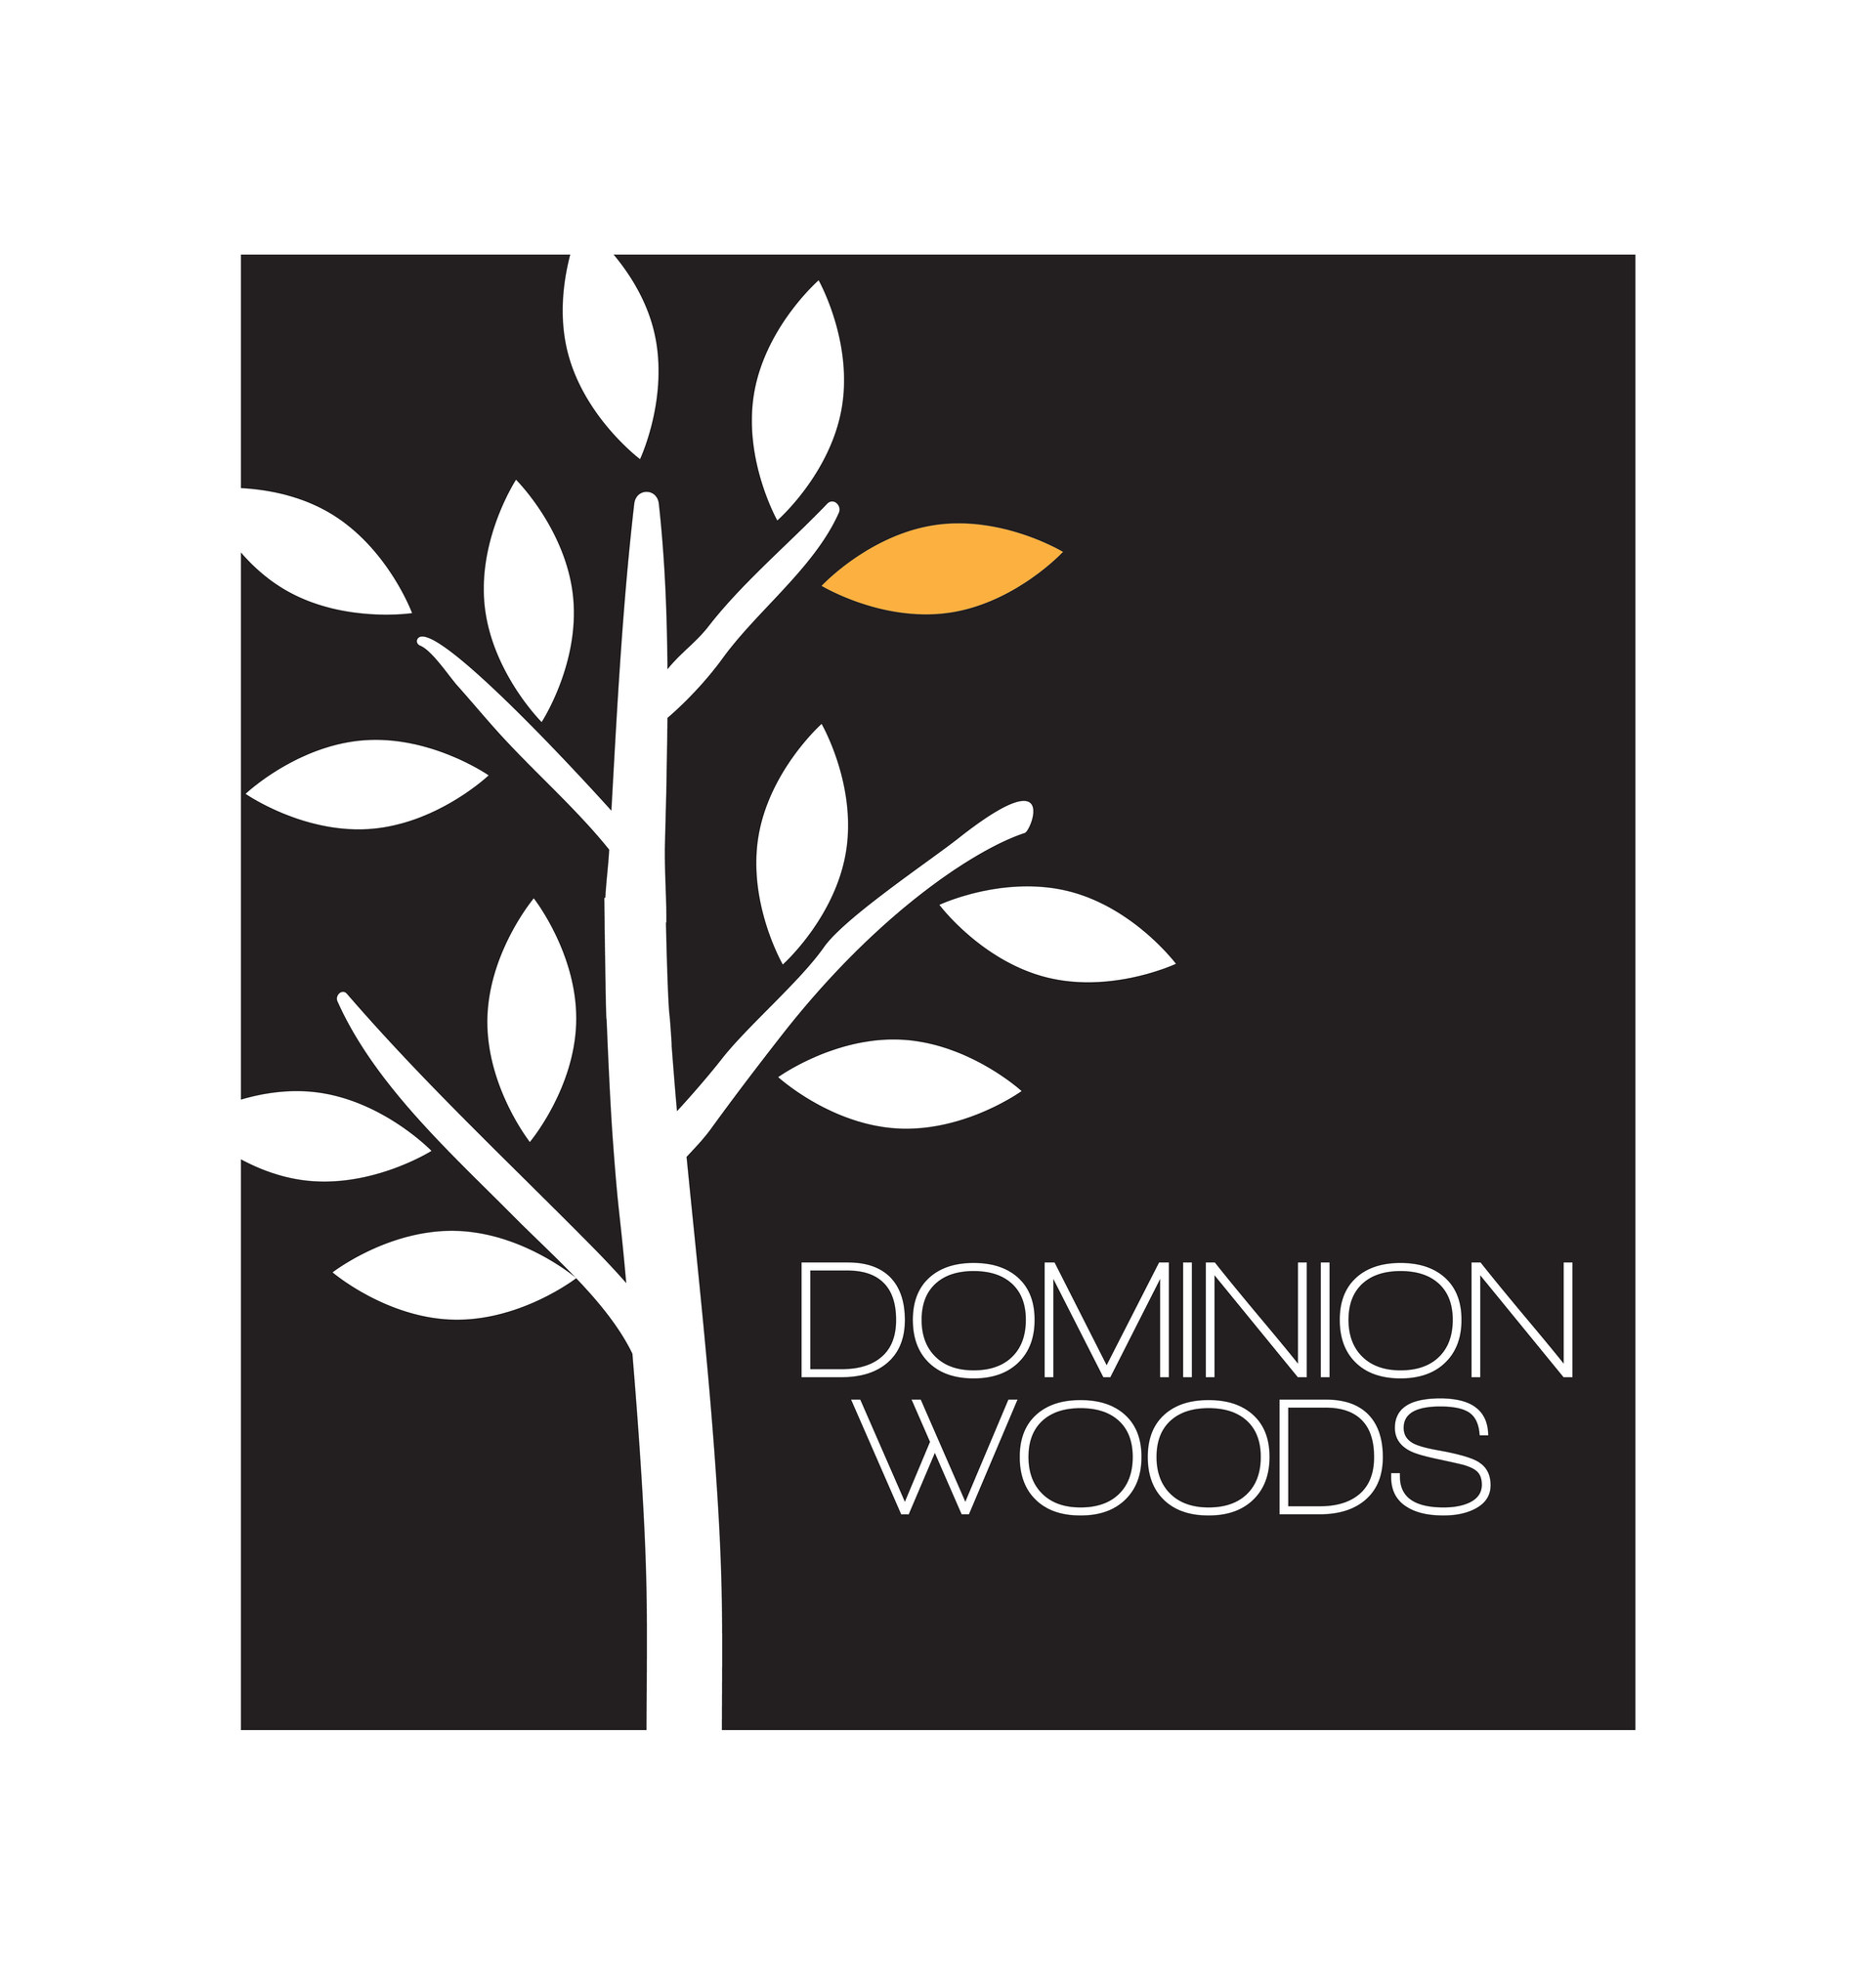 Dominion Woods